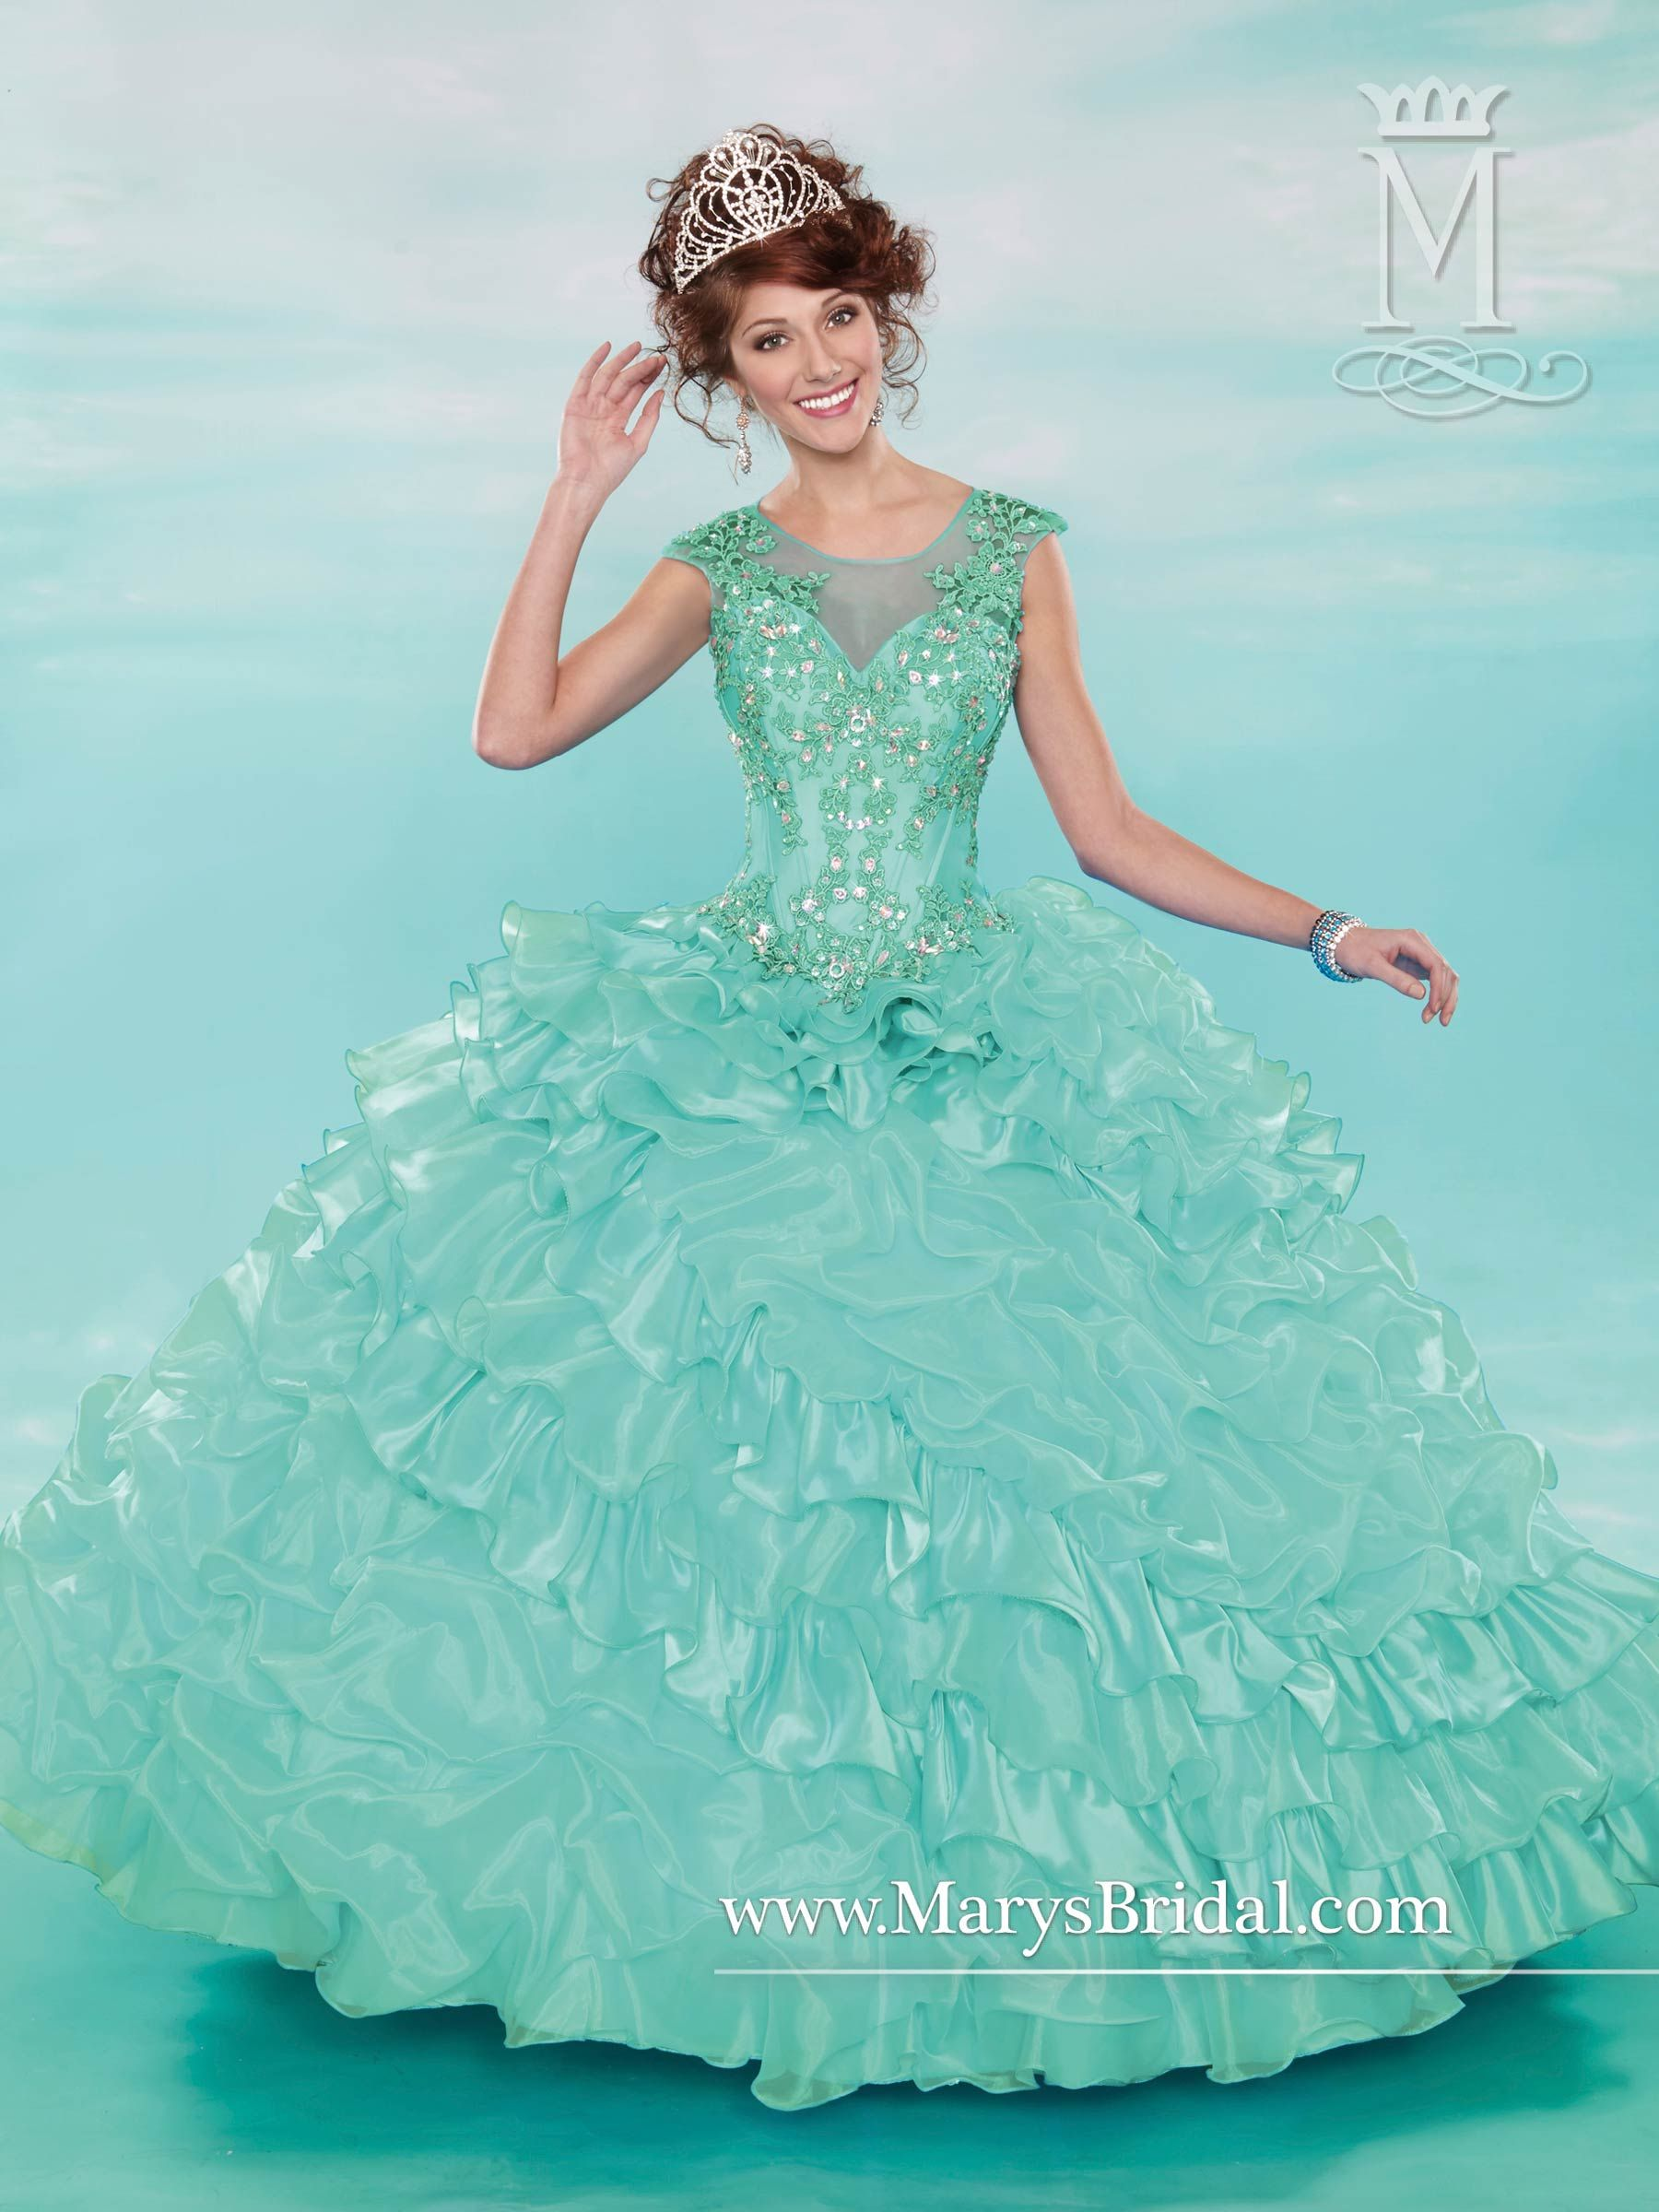 STYLE: 4615 by Mary\'s Bridal Blue Teal Quinceñera dress | Yasmin\'s ...